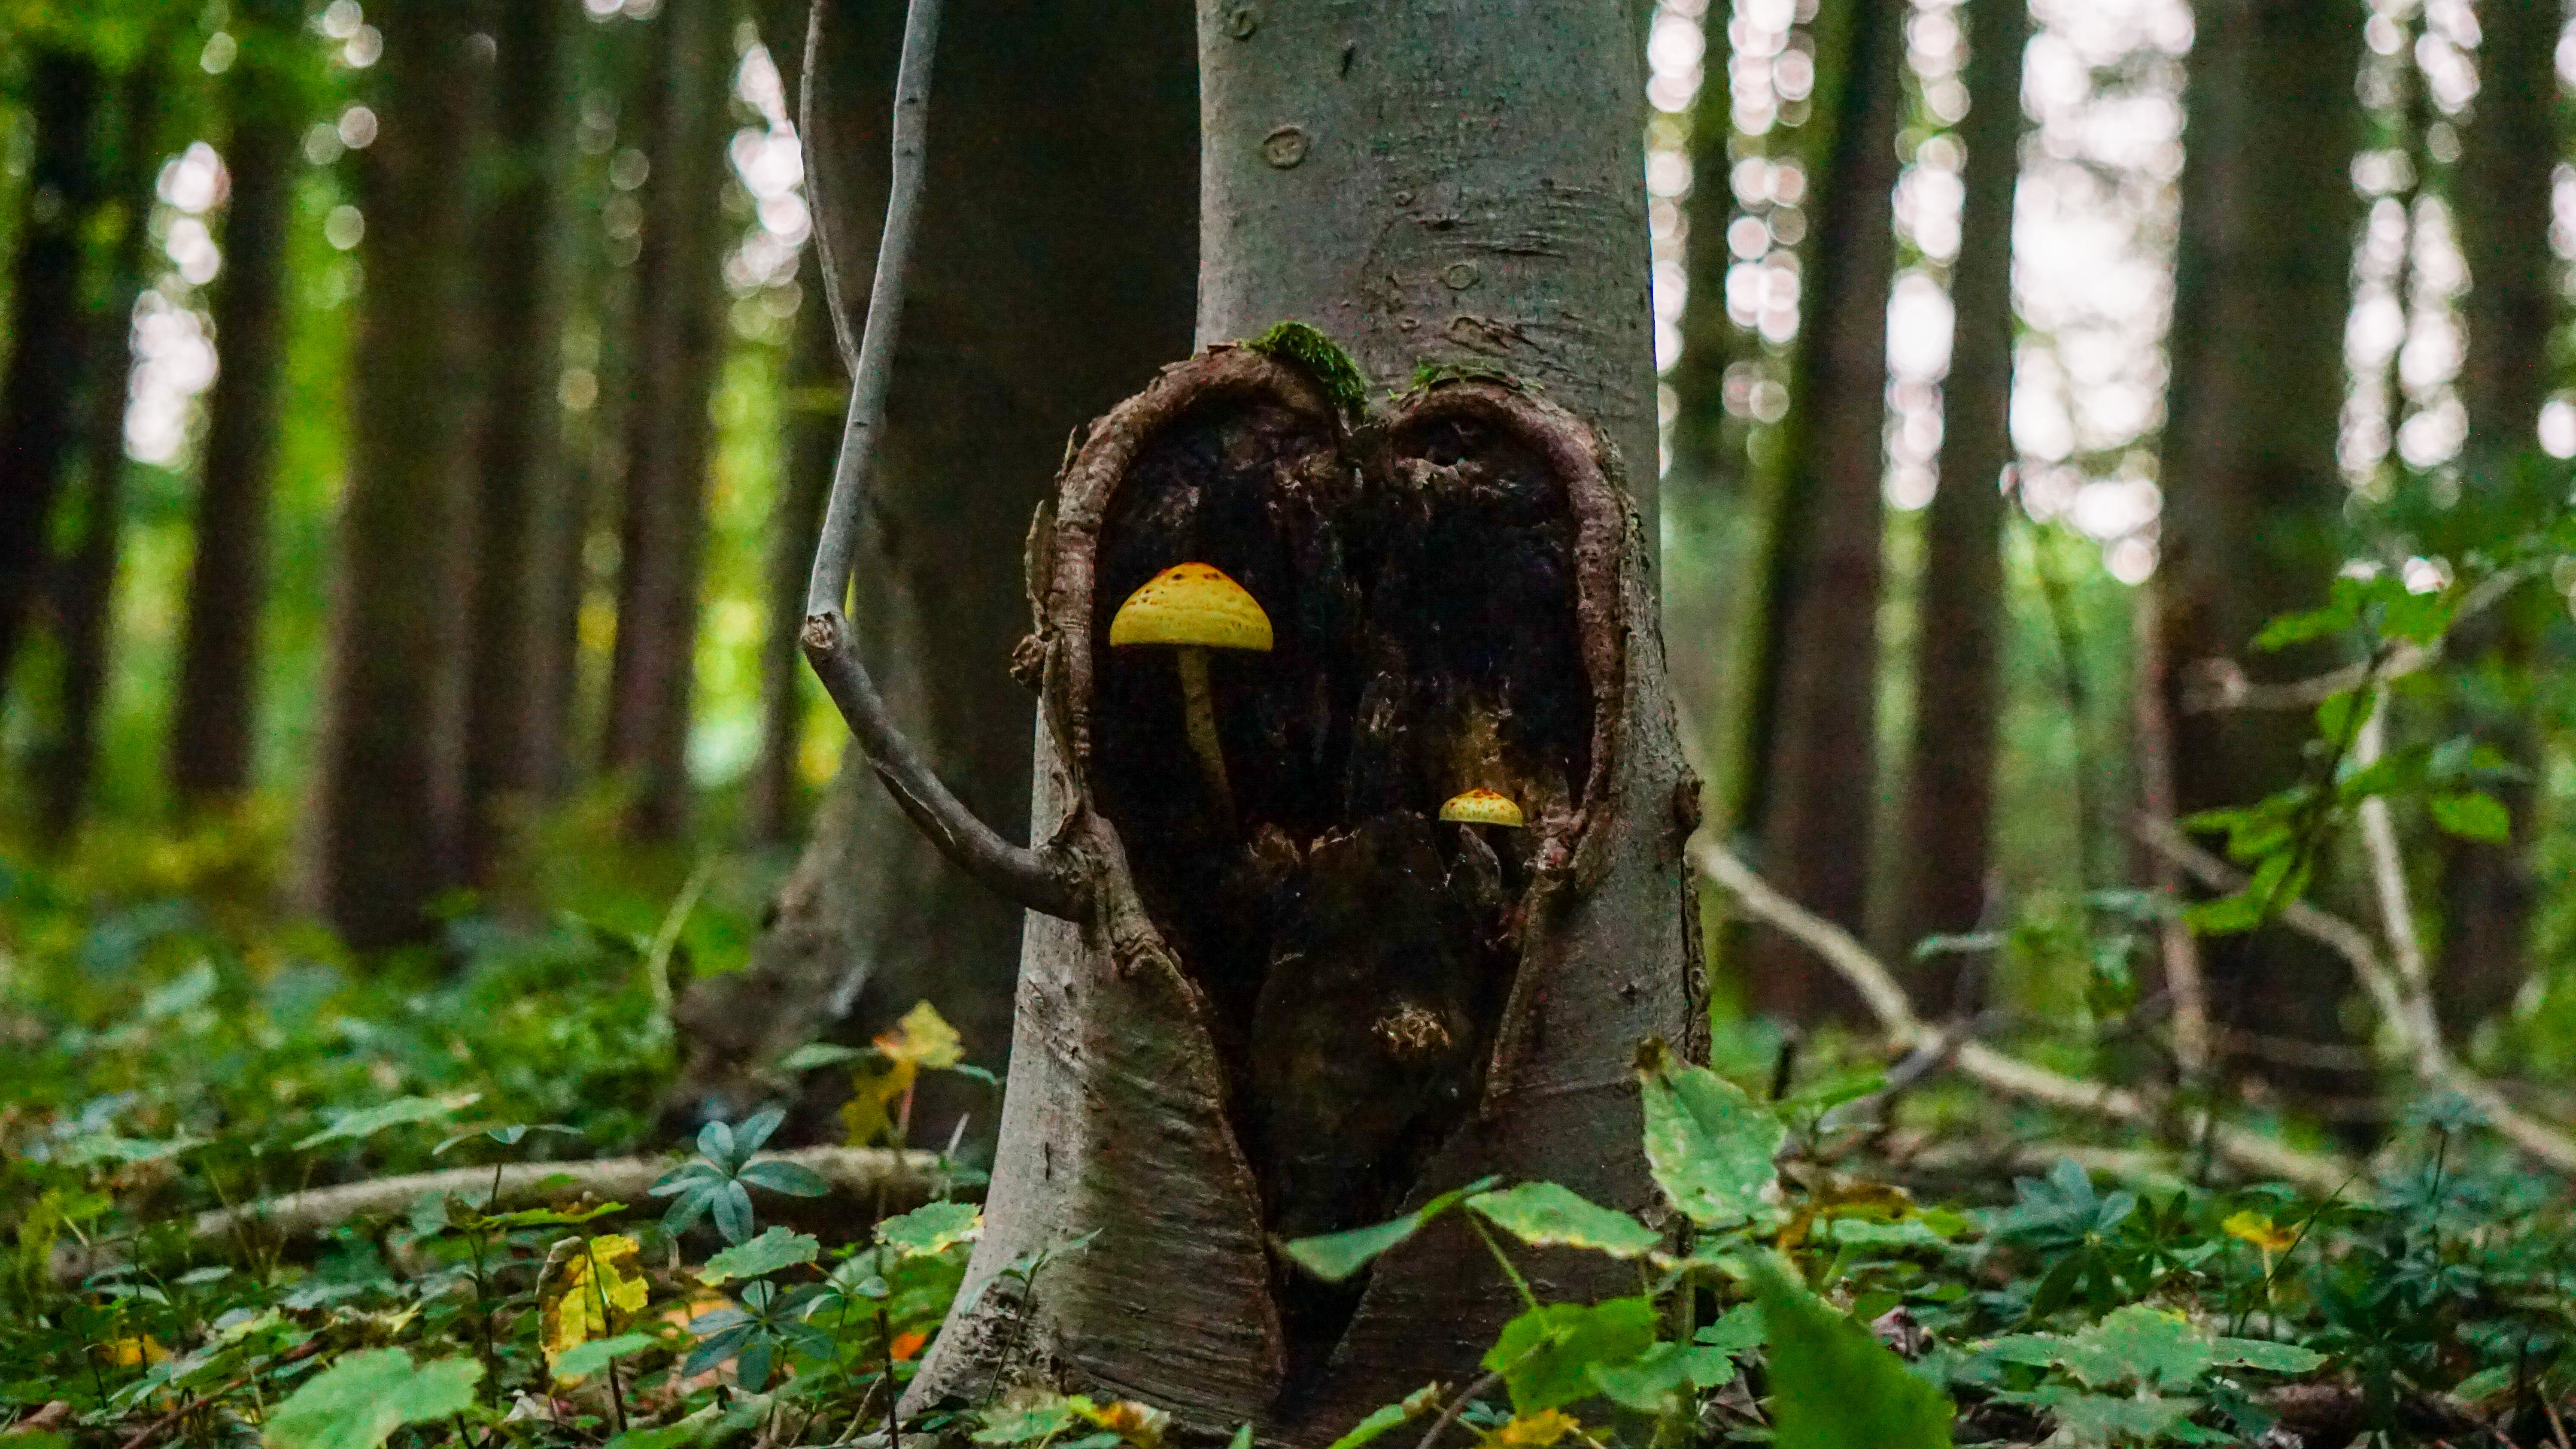 Free stock photo of nature, art, forest, yellow